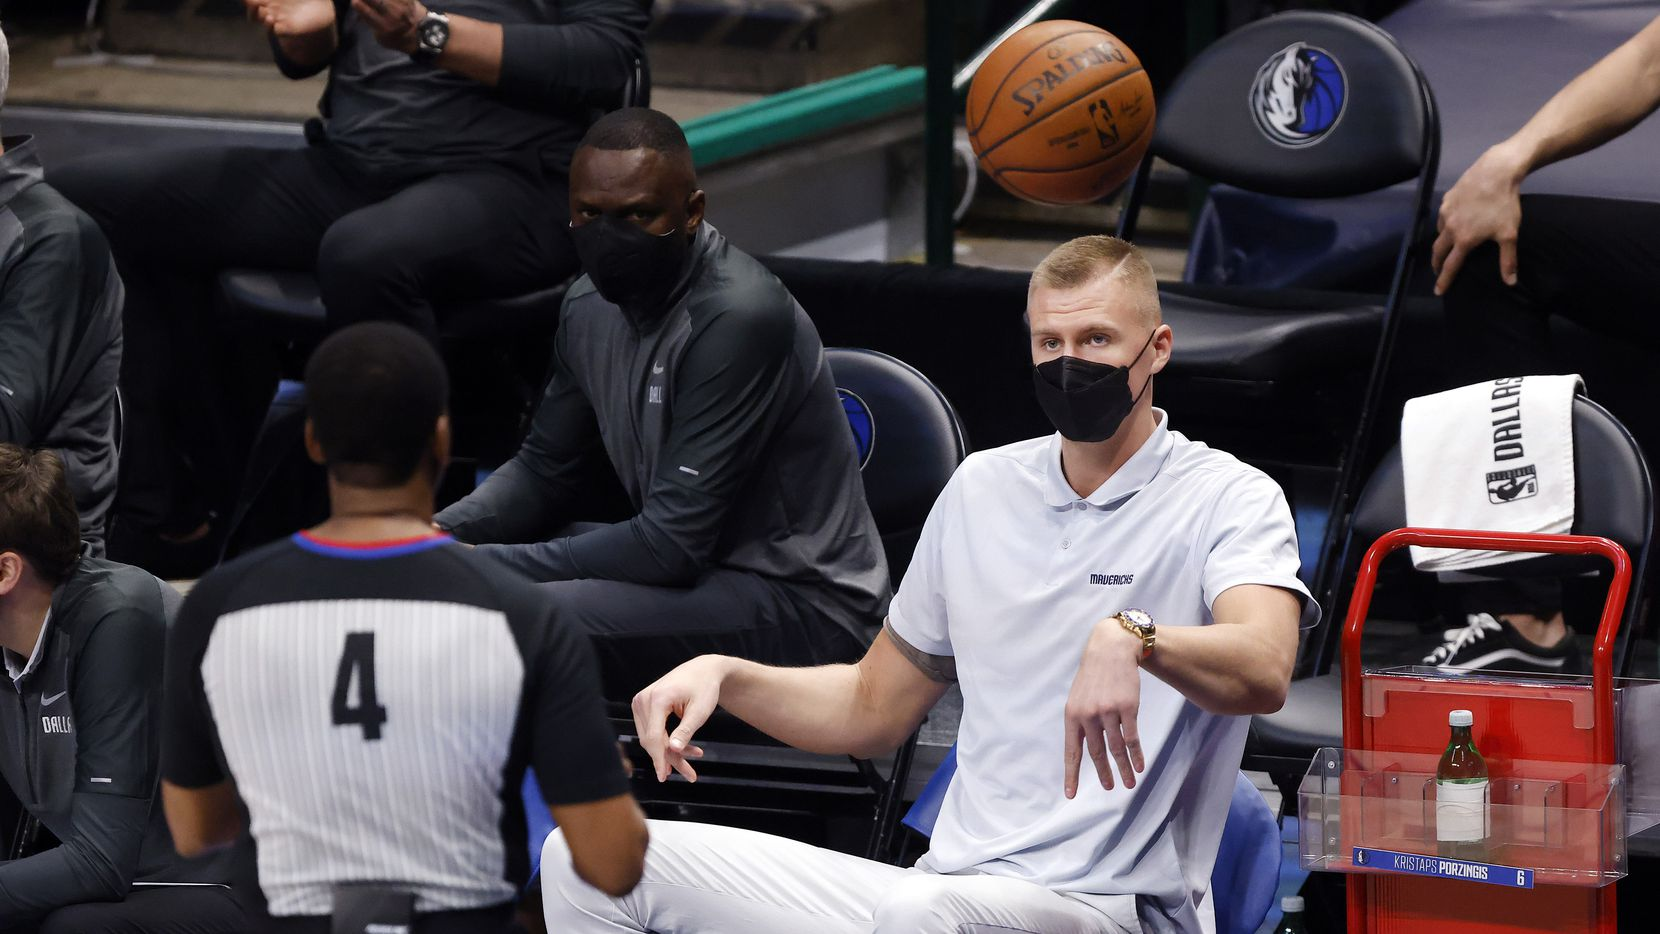 Injured Mavericks center Kristaps Porzingis throws the ball to an official during the Mavericks' game against the Celtics at American Airlines Center in Dallas on Tuesday, Feb. 23, 2021.